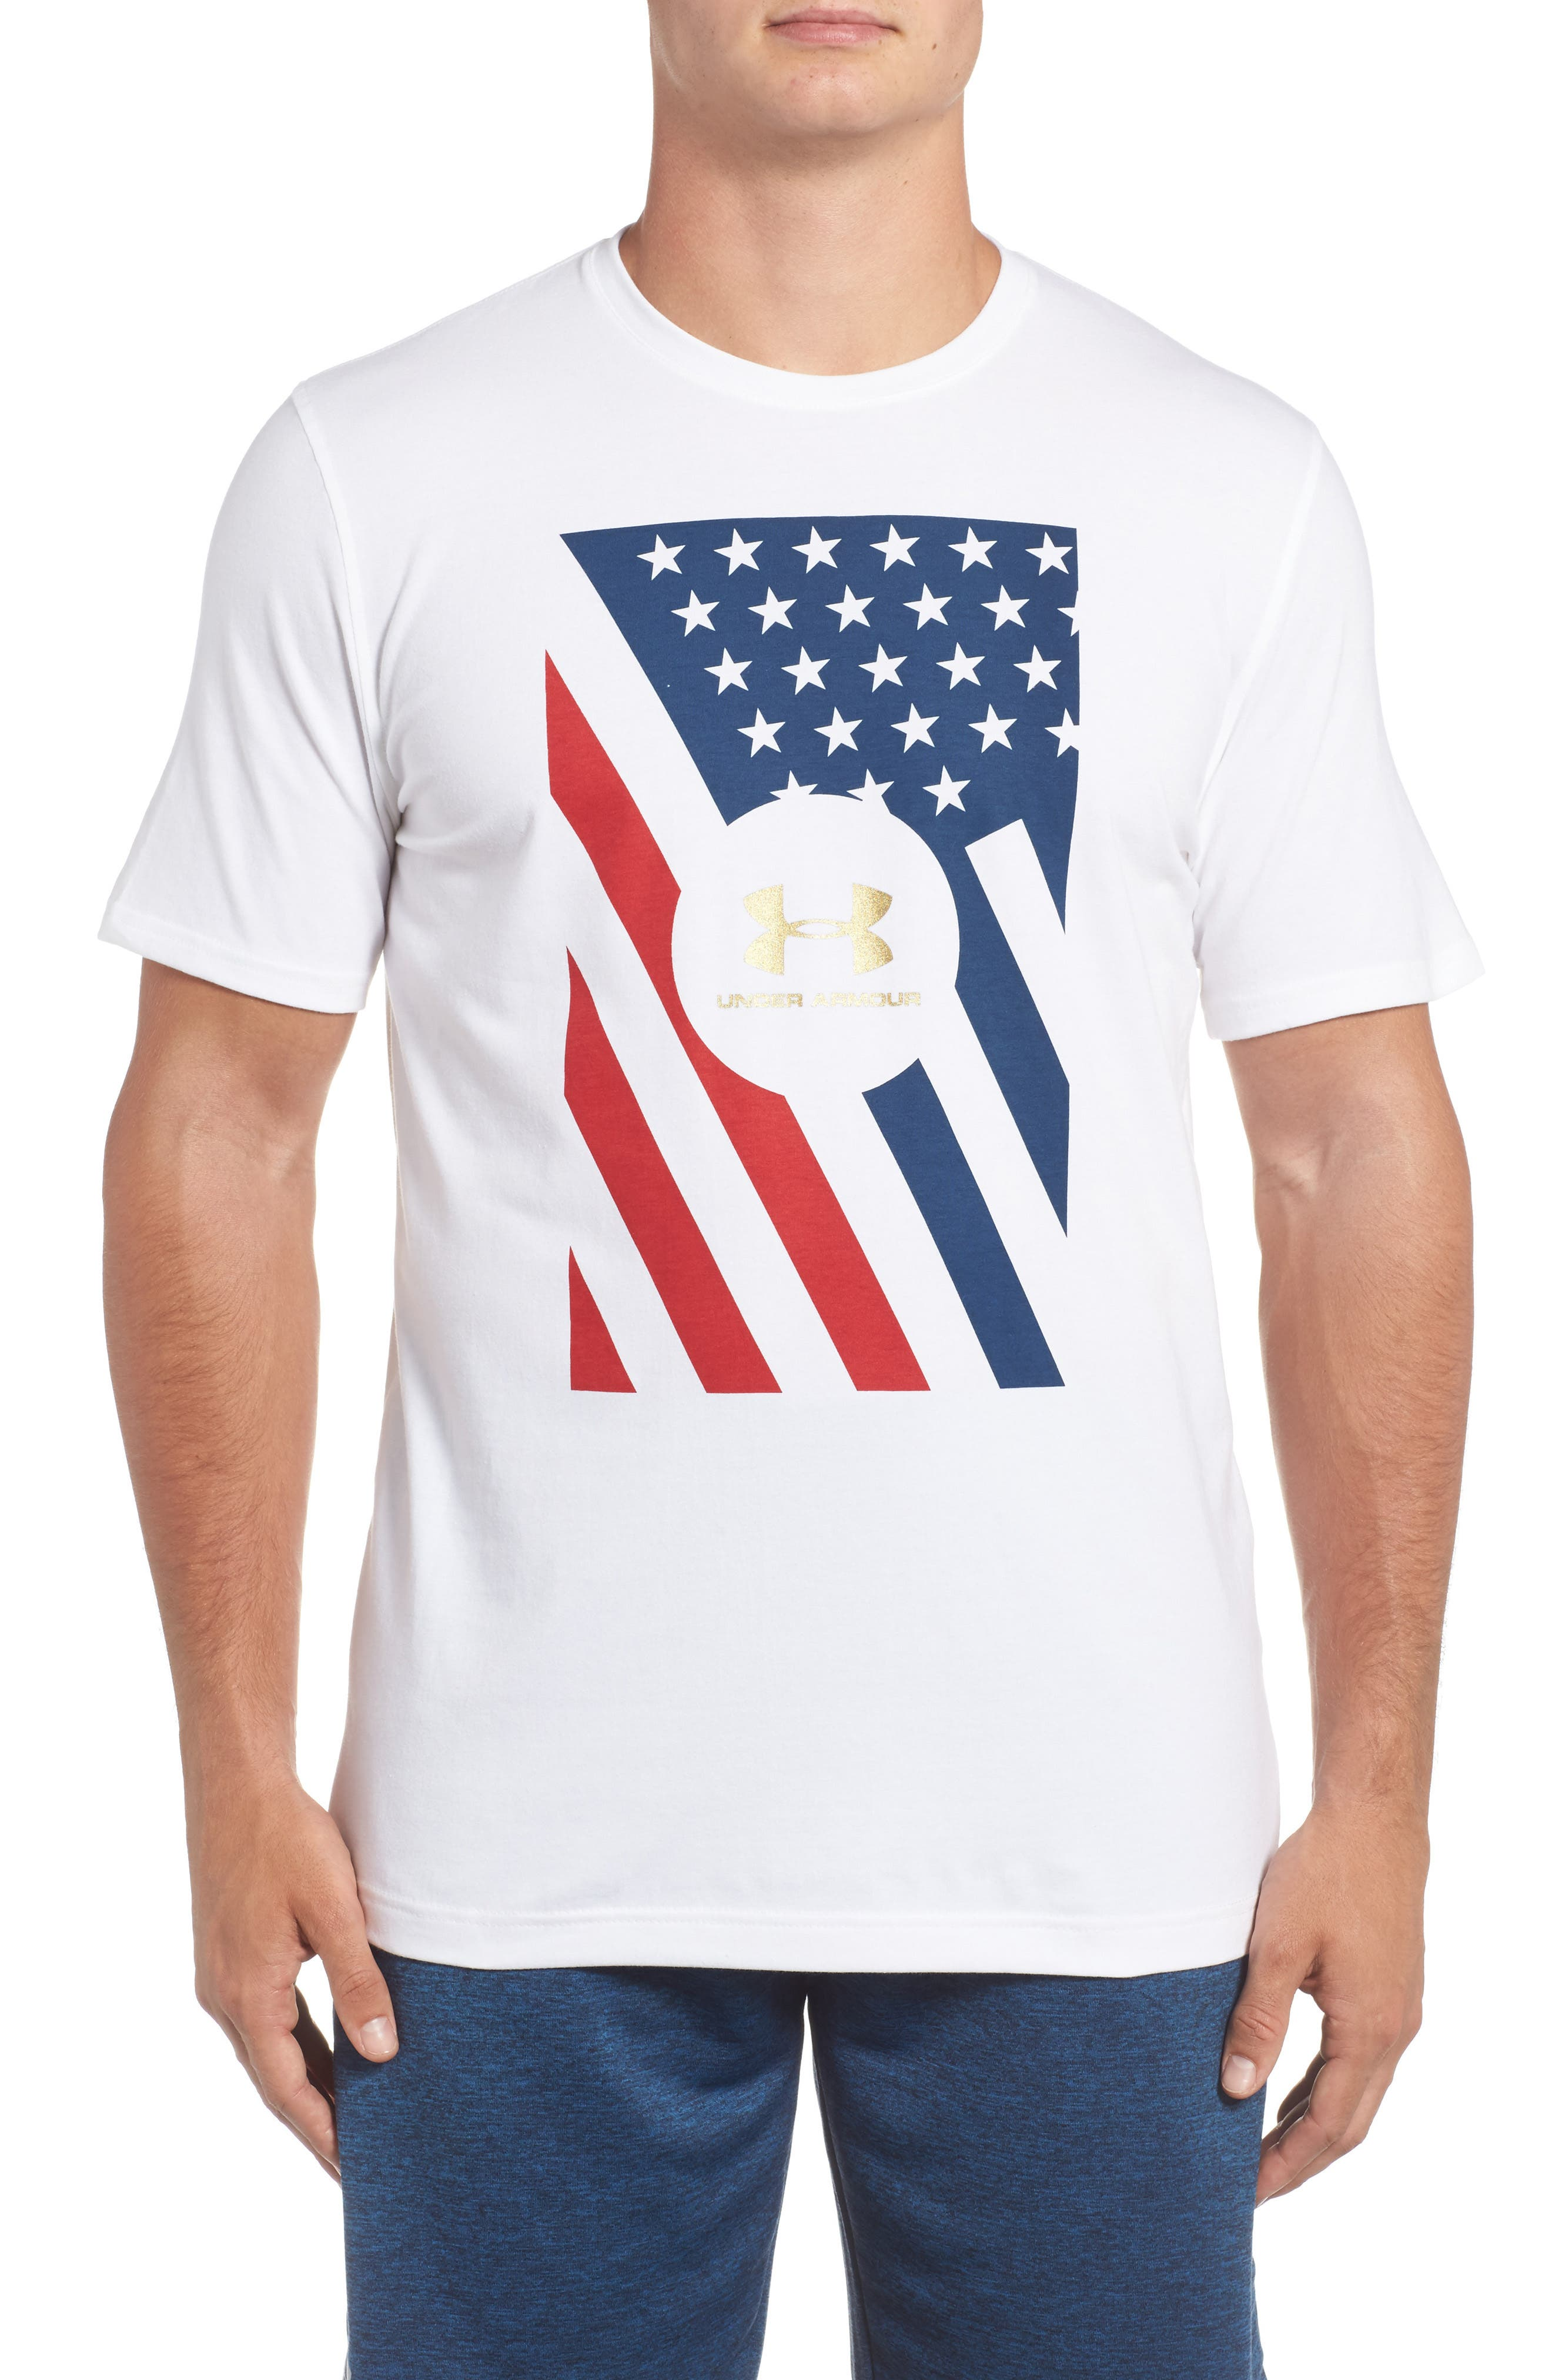 Under Armour Rep The USA T-Shirt